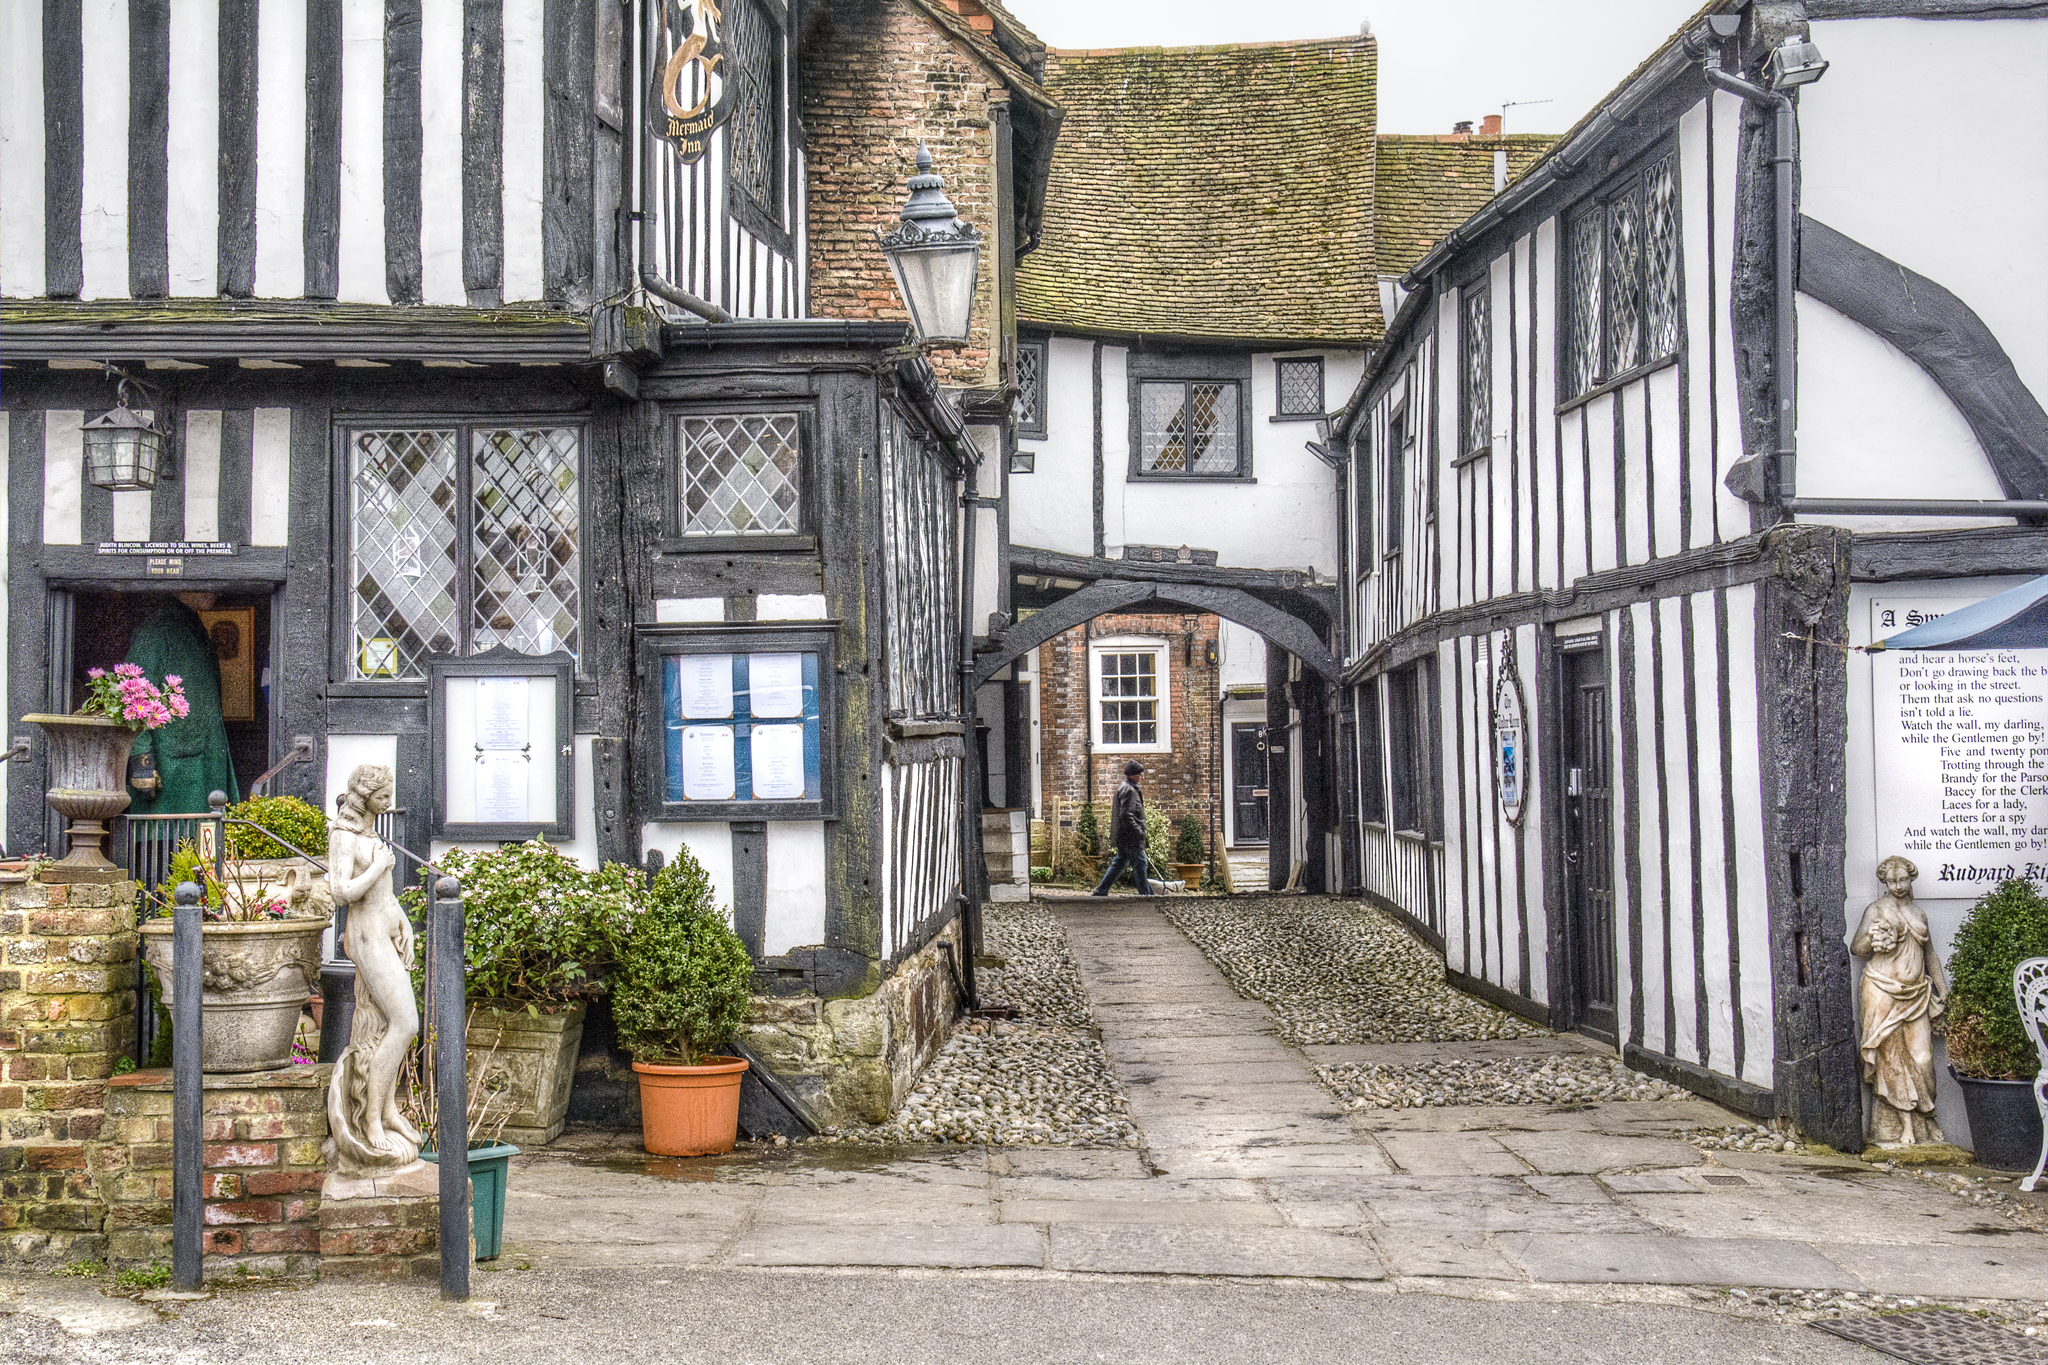 Mermaid Inn, Rye, Sussex